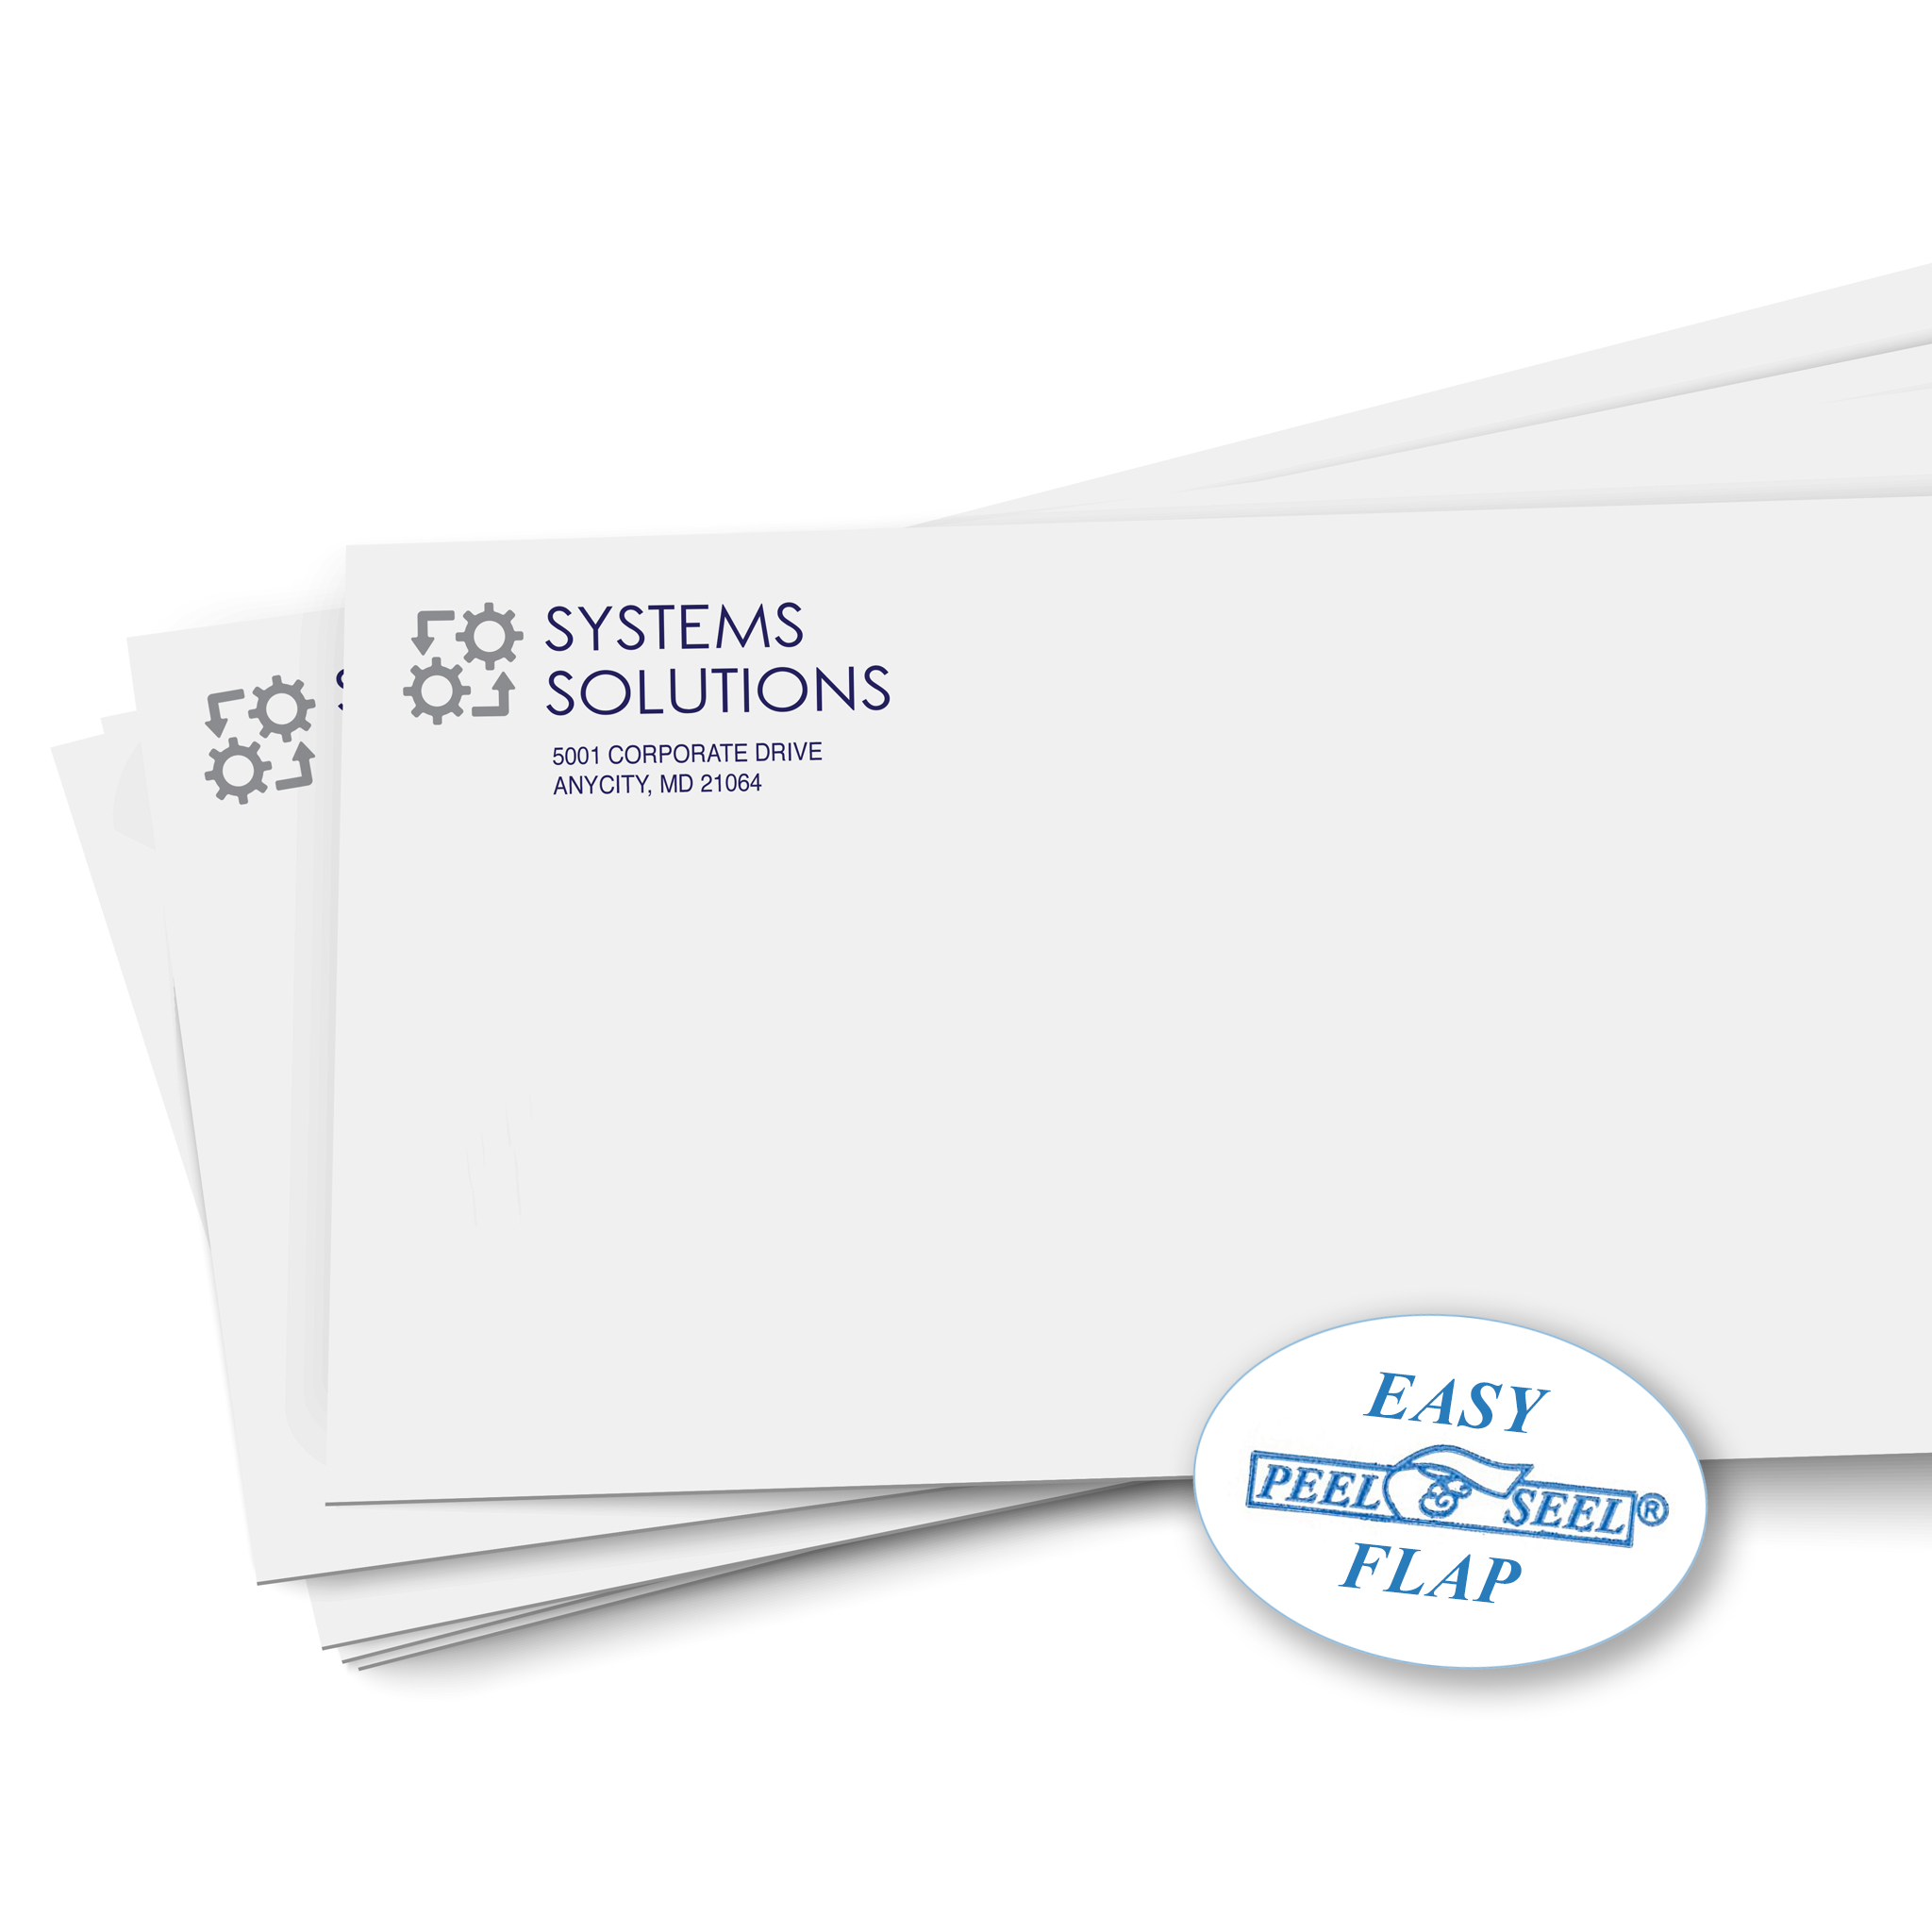 self-sealing printed envelope